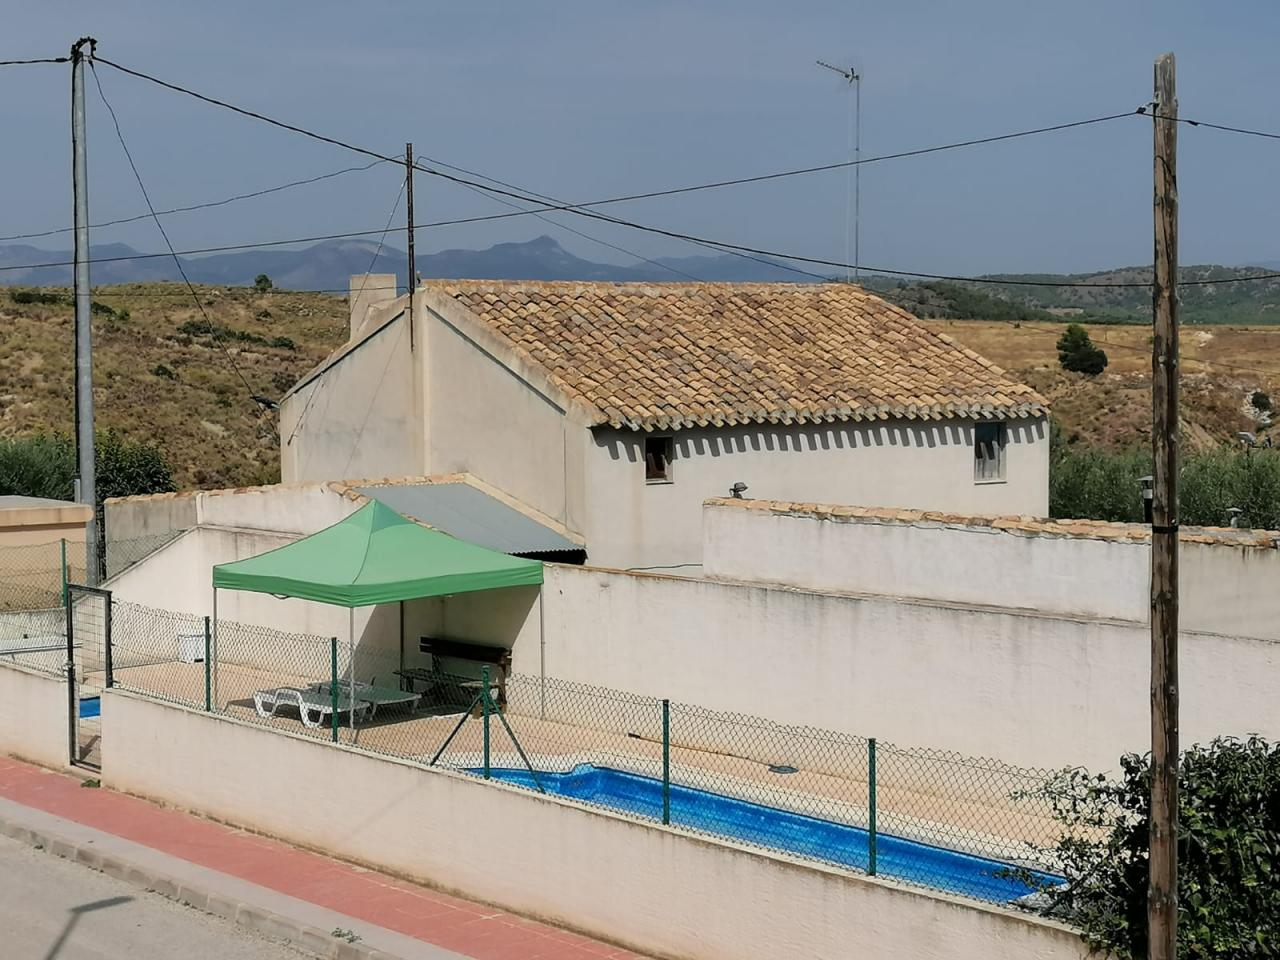 Dúplex Arroyo Hurtado 2